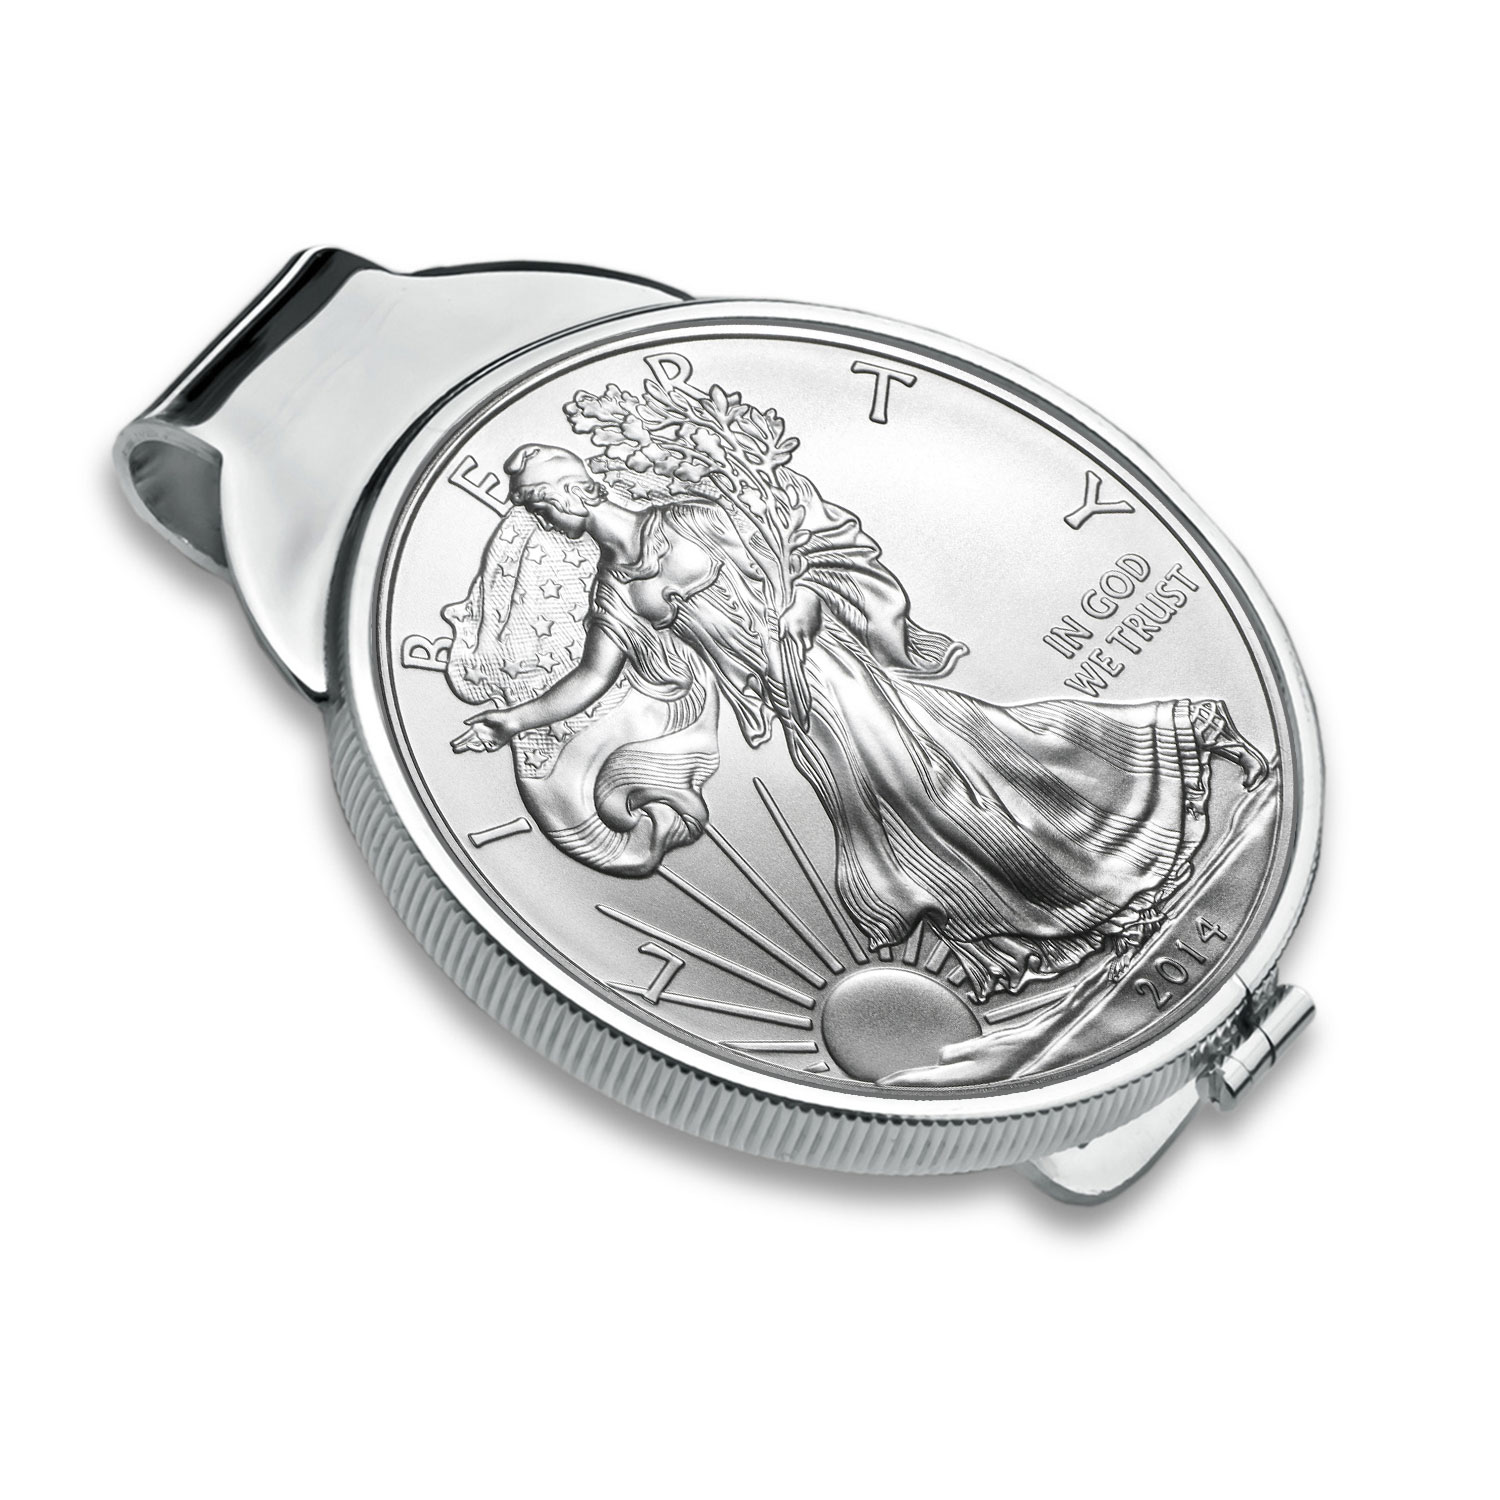 Sterling Silver Polished Coin Money Clip - 40.6mm